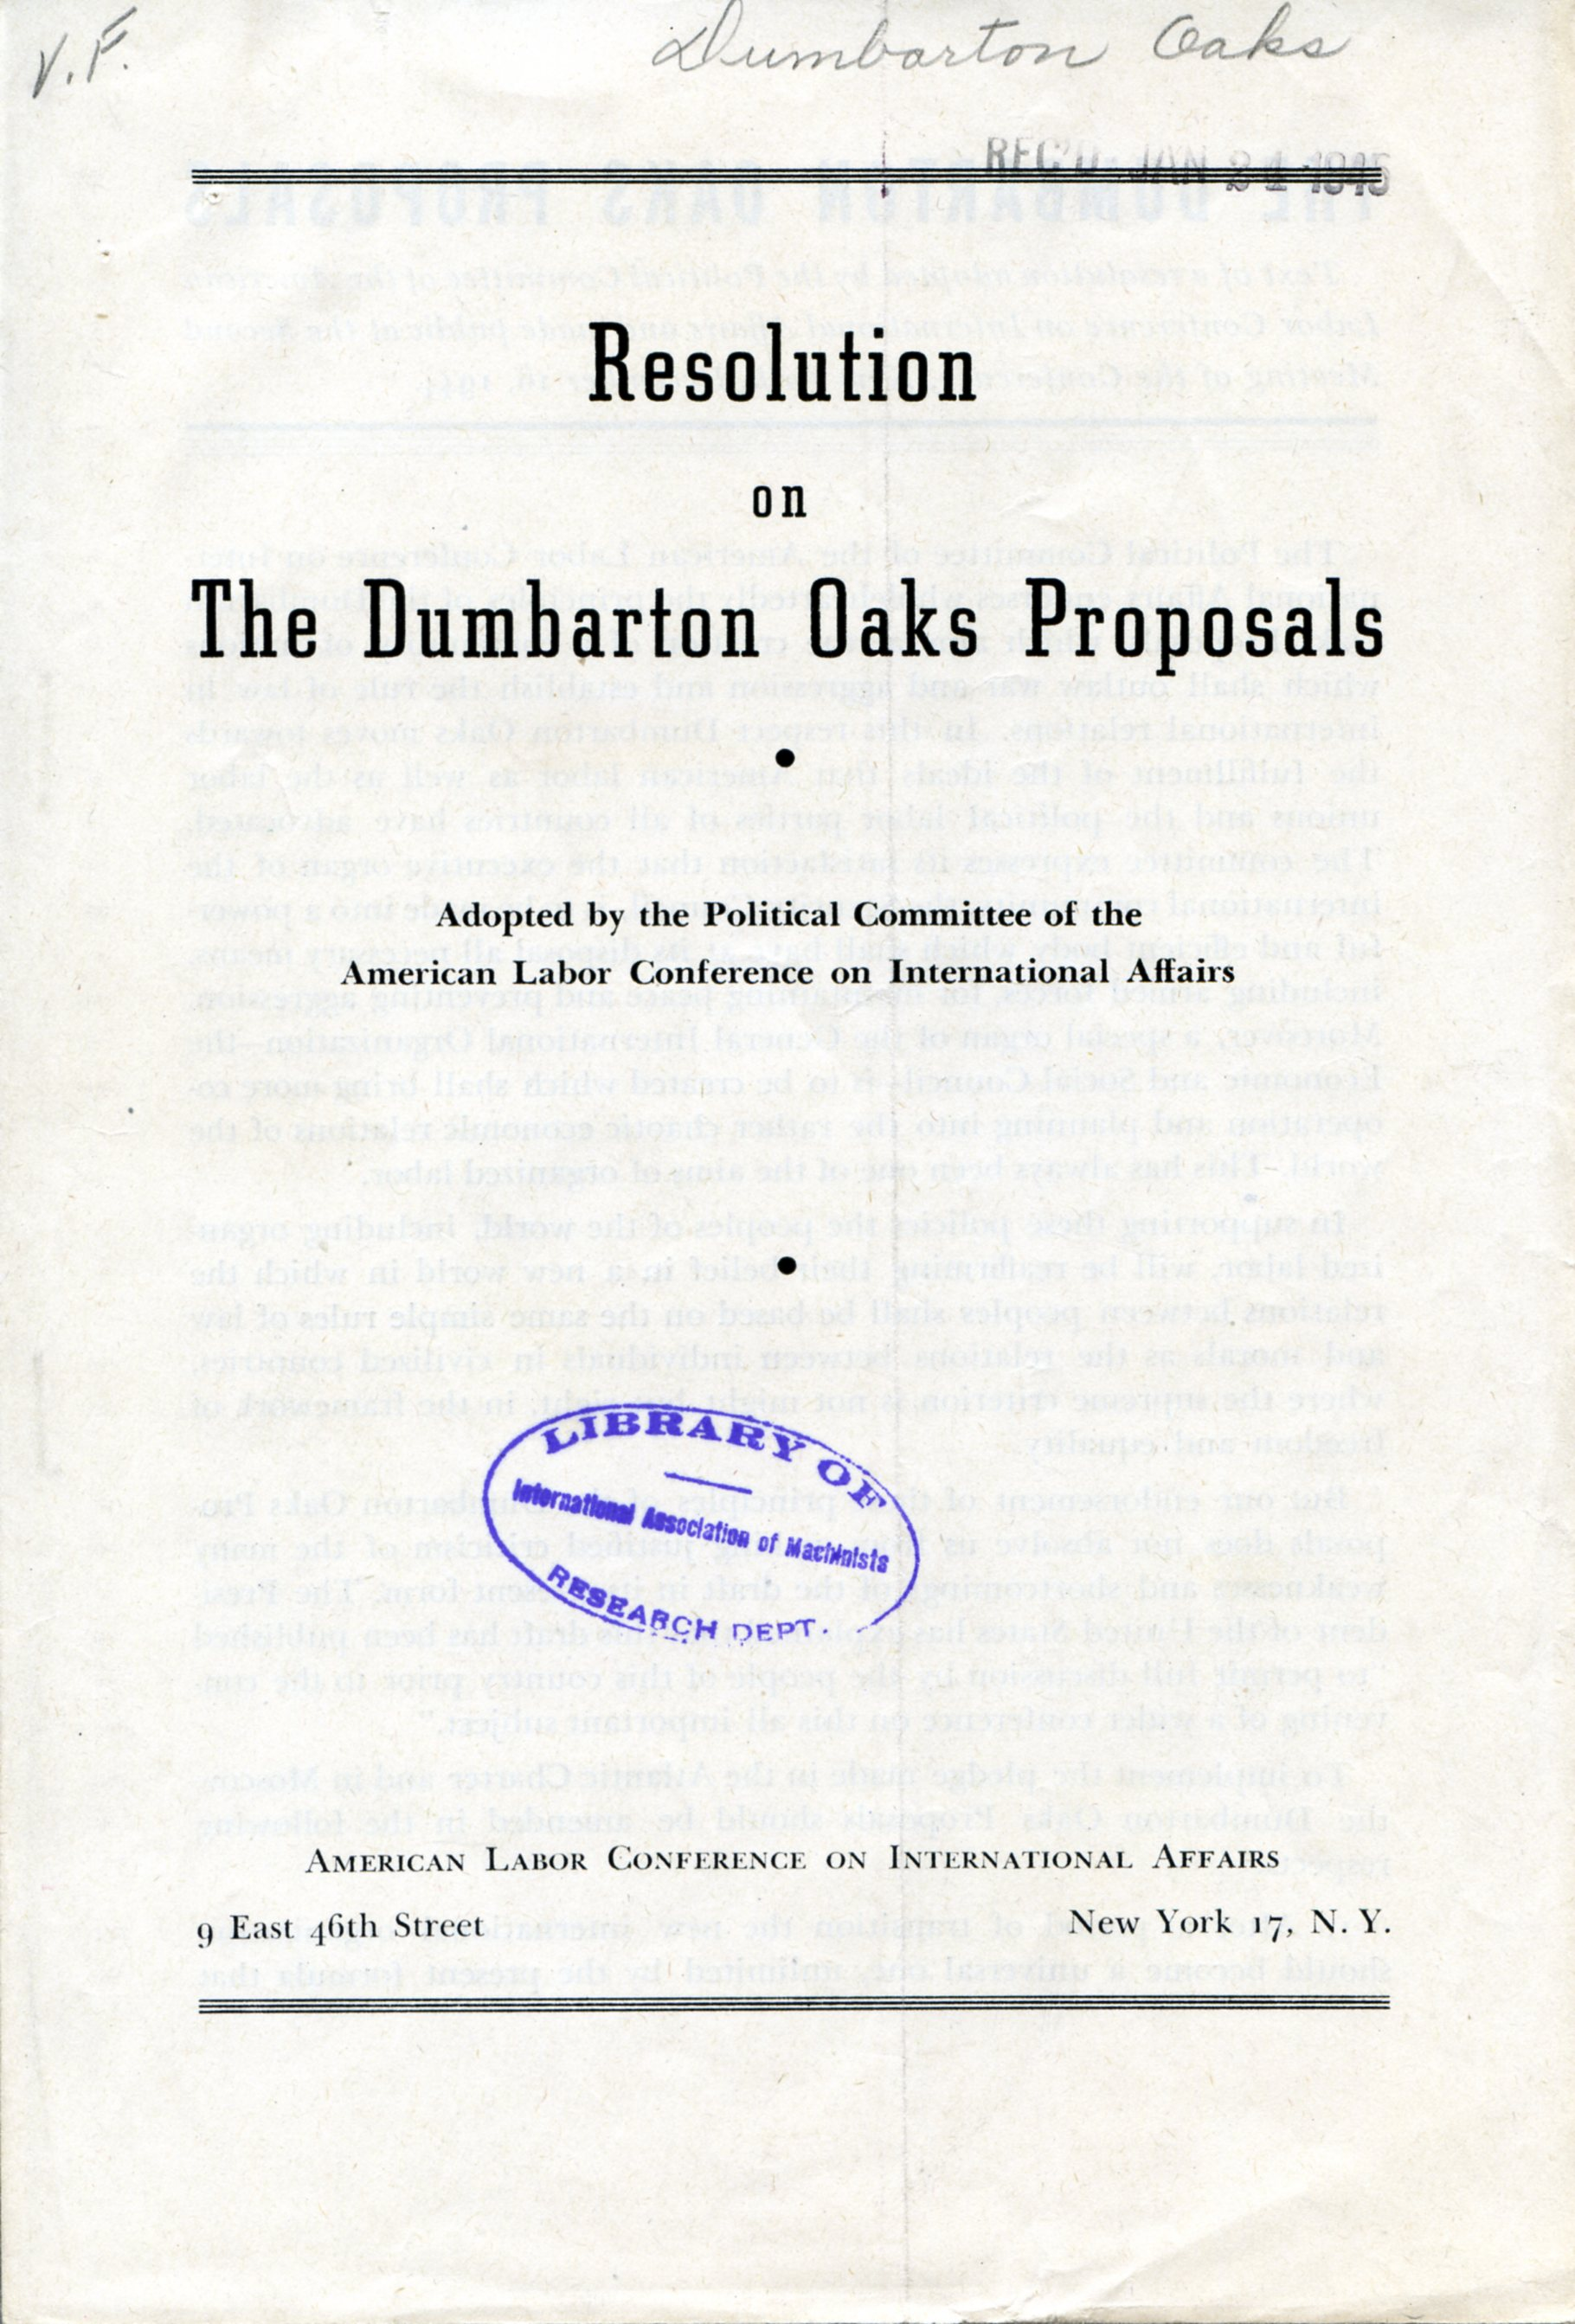 Resolution of the Dumbarton Oaks Proposals